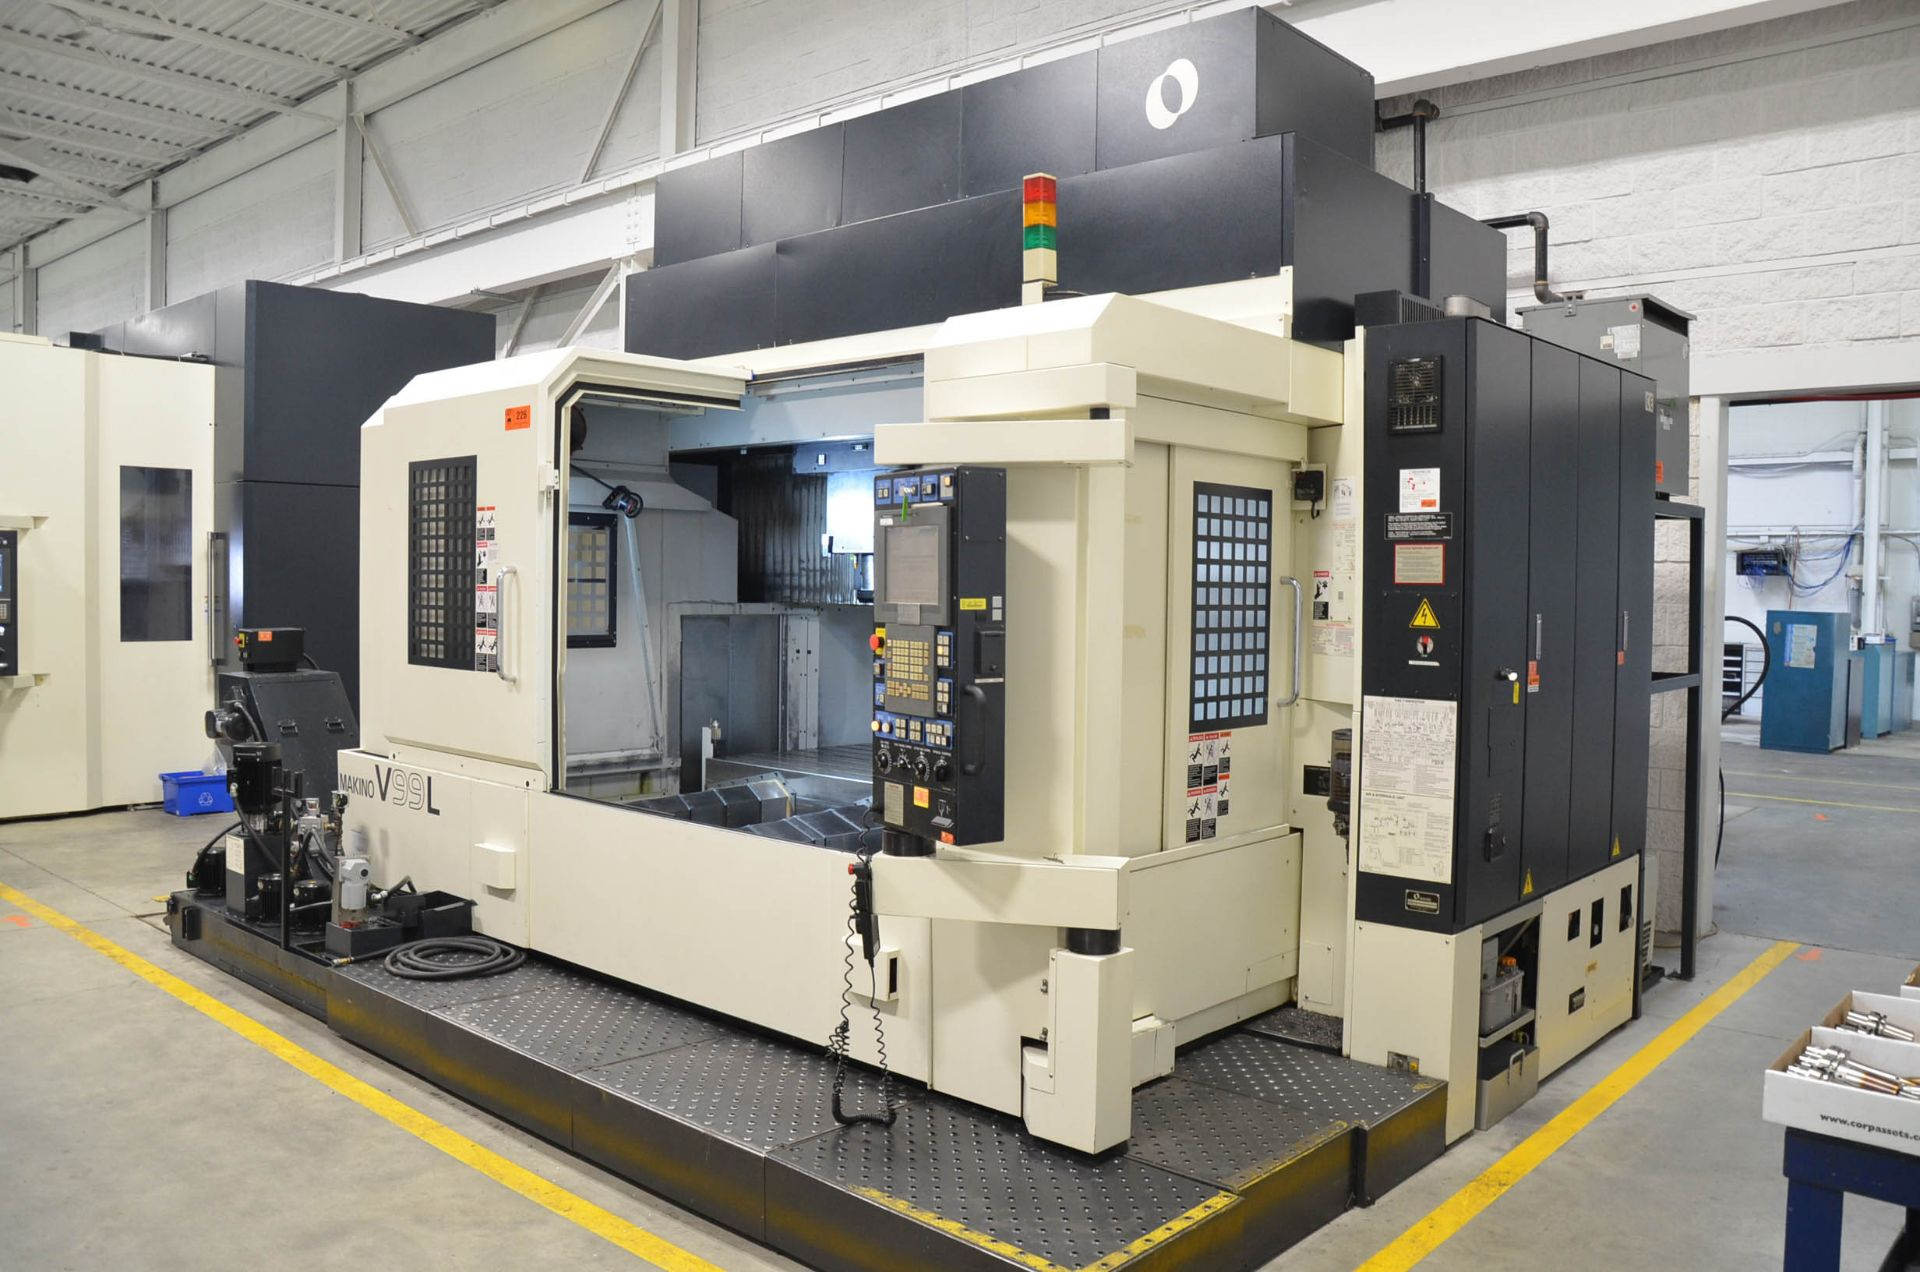 MAKINO (2008) V99L(#50) CNC VERTICAL MACHINING CENTER WITH MAKINO PROFESSIONAL 5 CNC CONTROL, 39. - Image 4 of 12